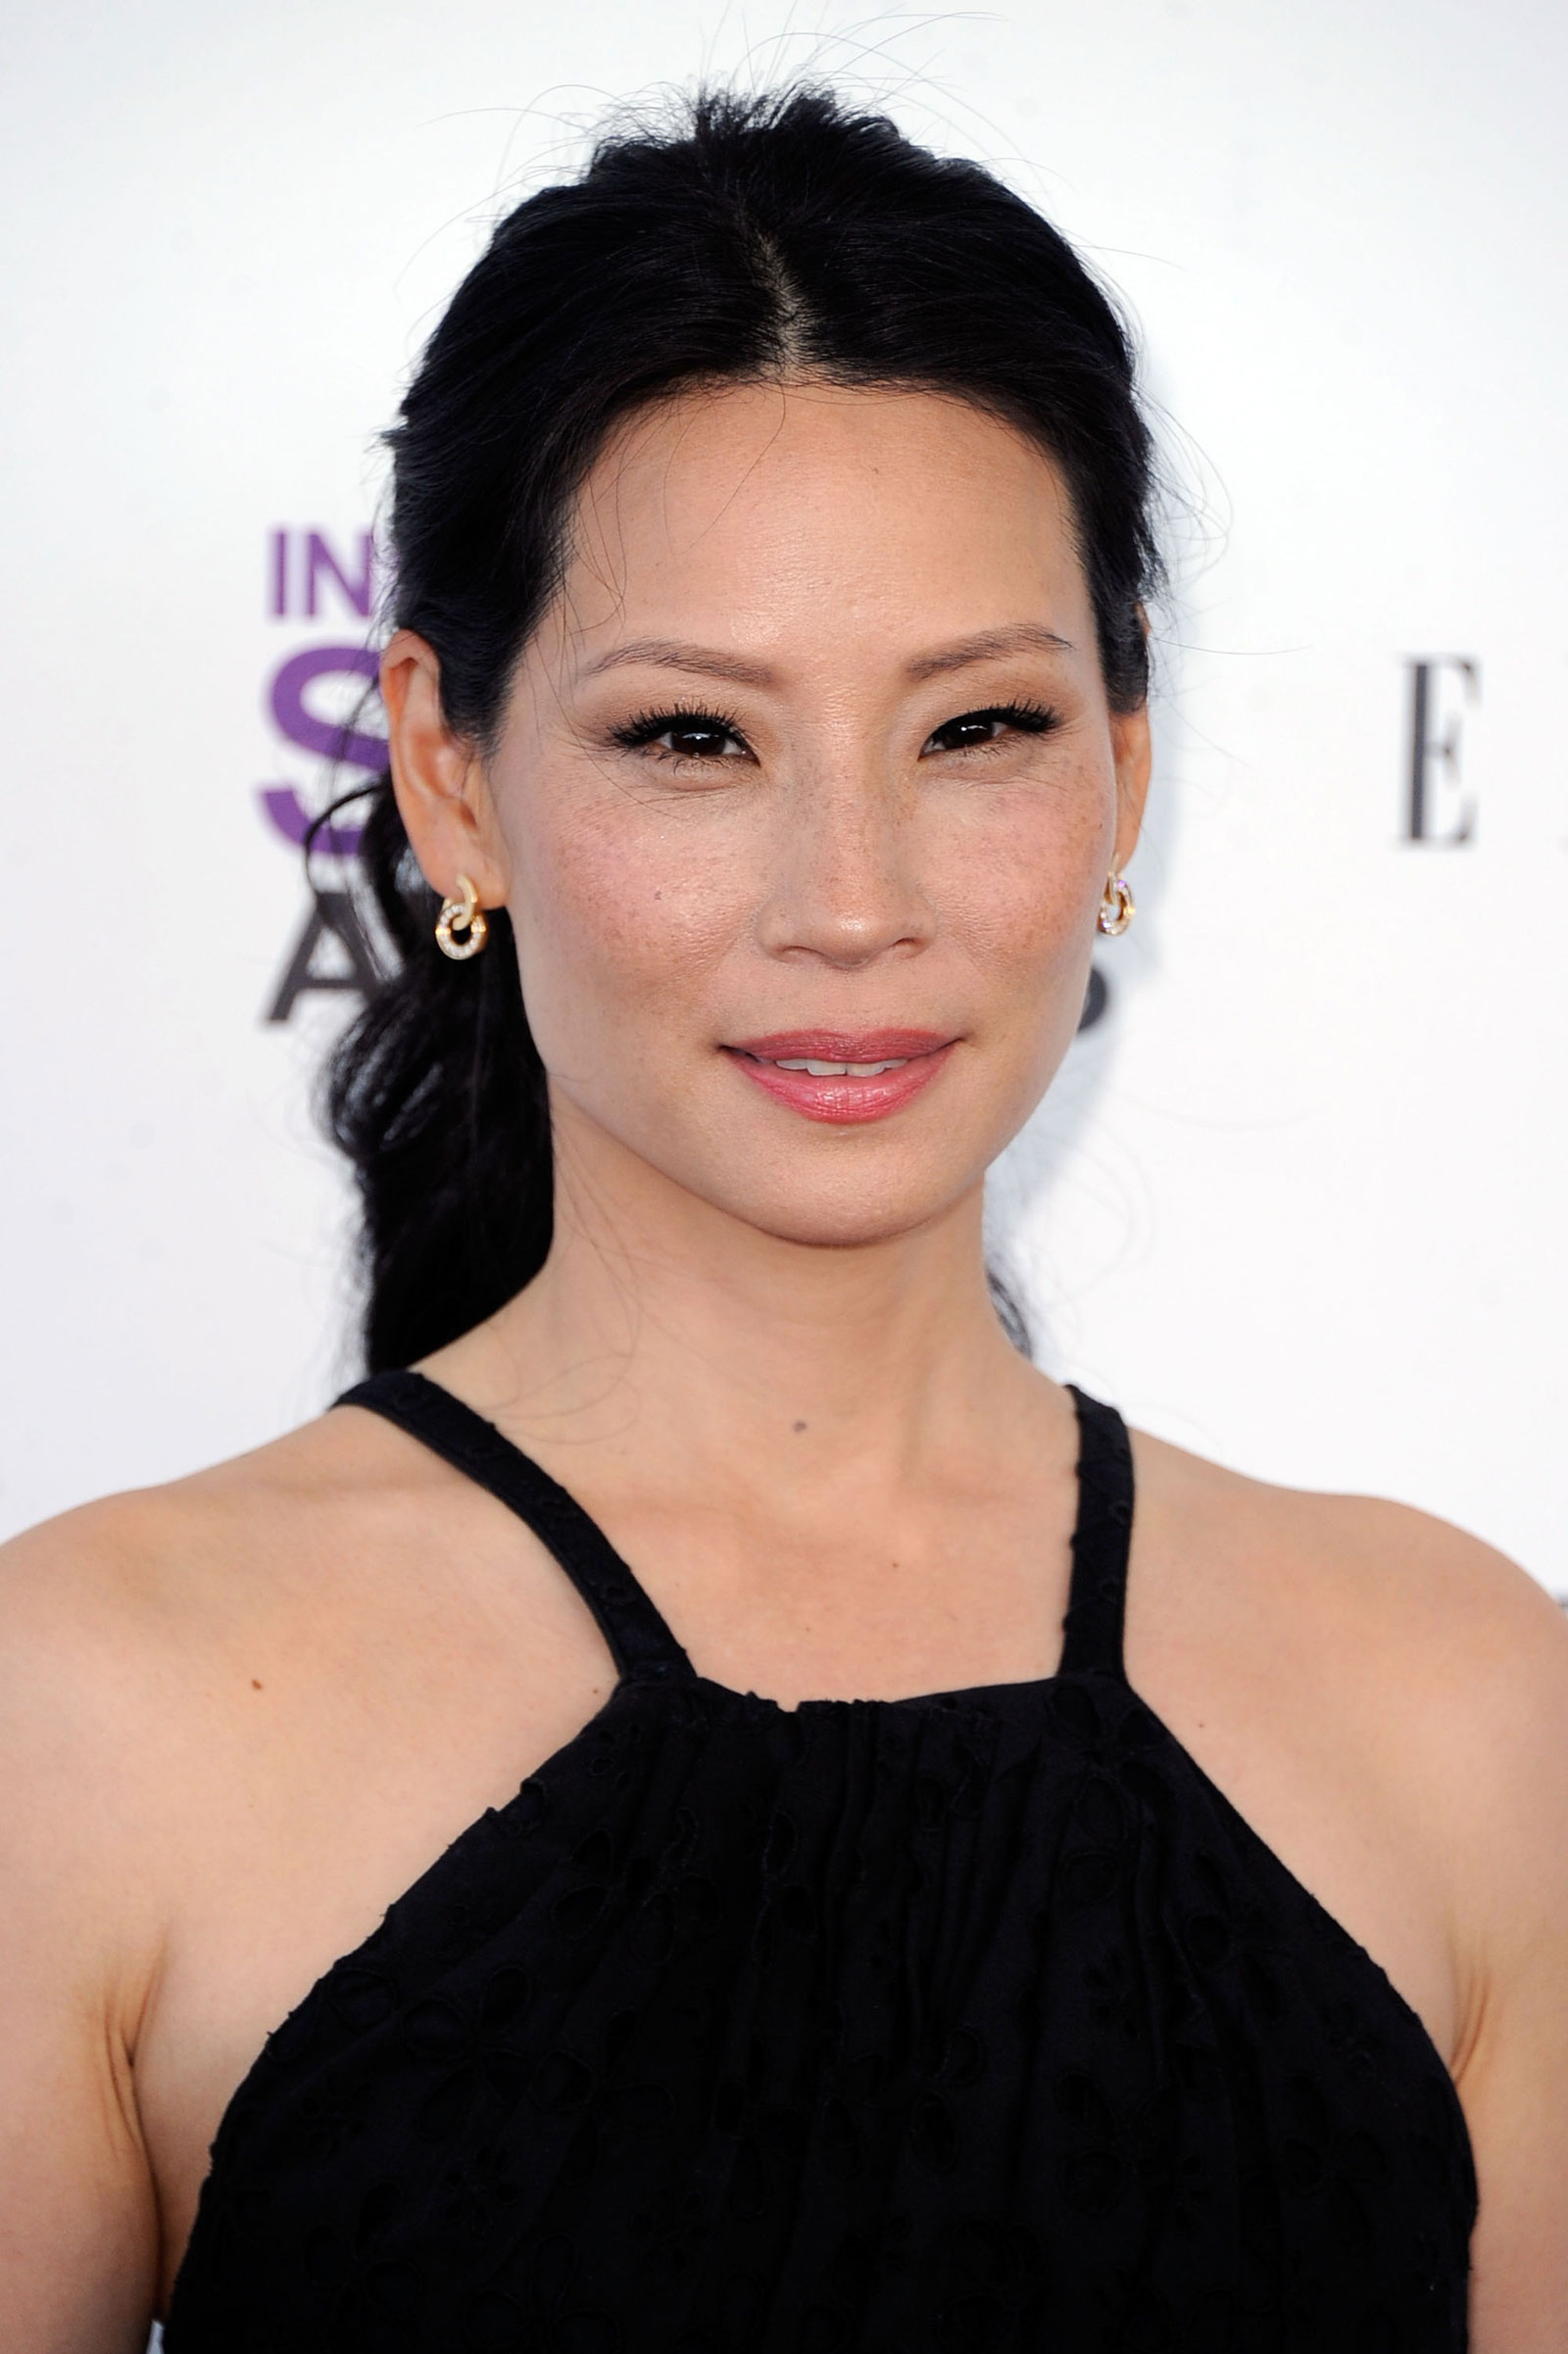 Lucy Liu - Wallpaper Colection